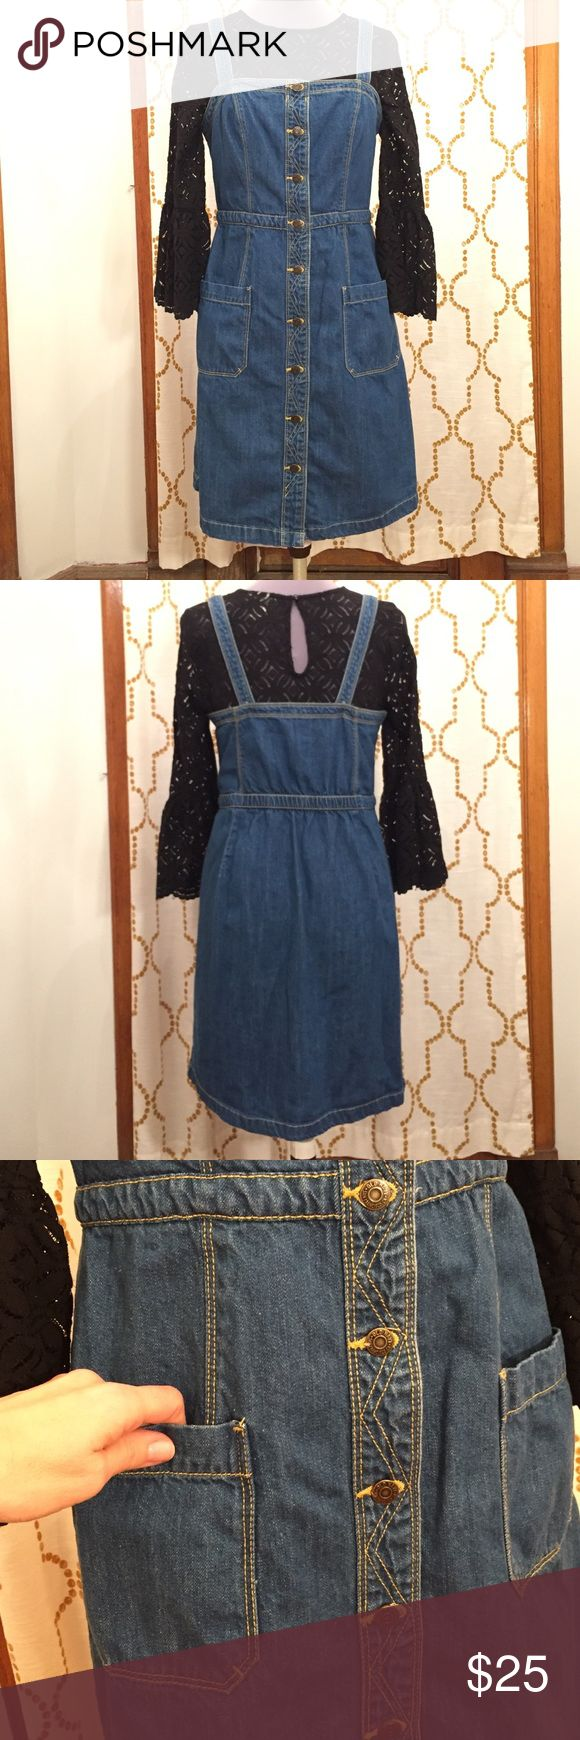 Old Navy denim overalls dress size 6 Old Navy Denim overalls dress. Size 6. Buttons up the front. Straps can adjust one button whole up. Stretch waist with 2 pockets at front. Old Navy Dresses Midi